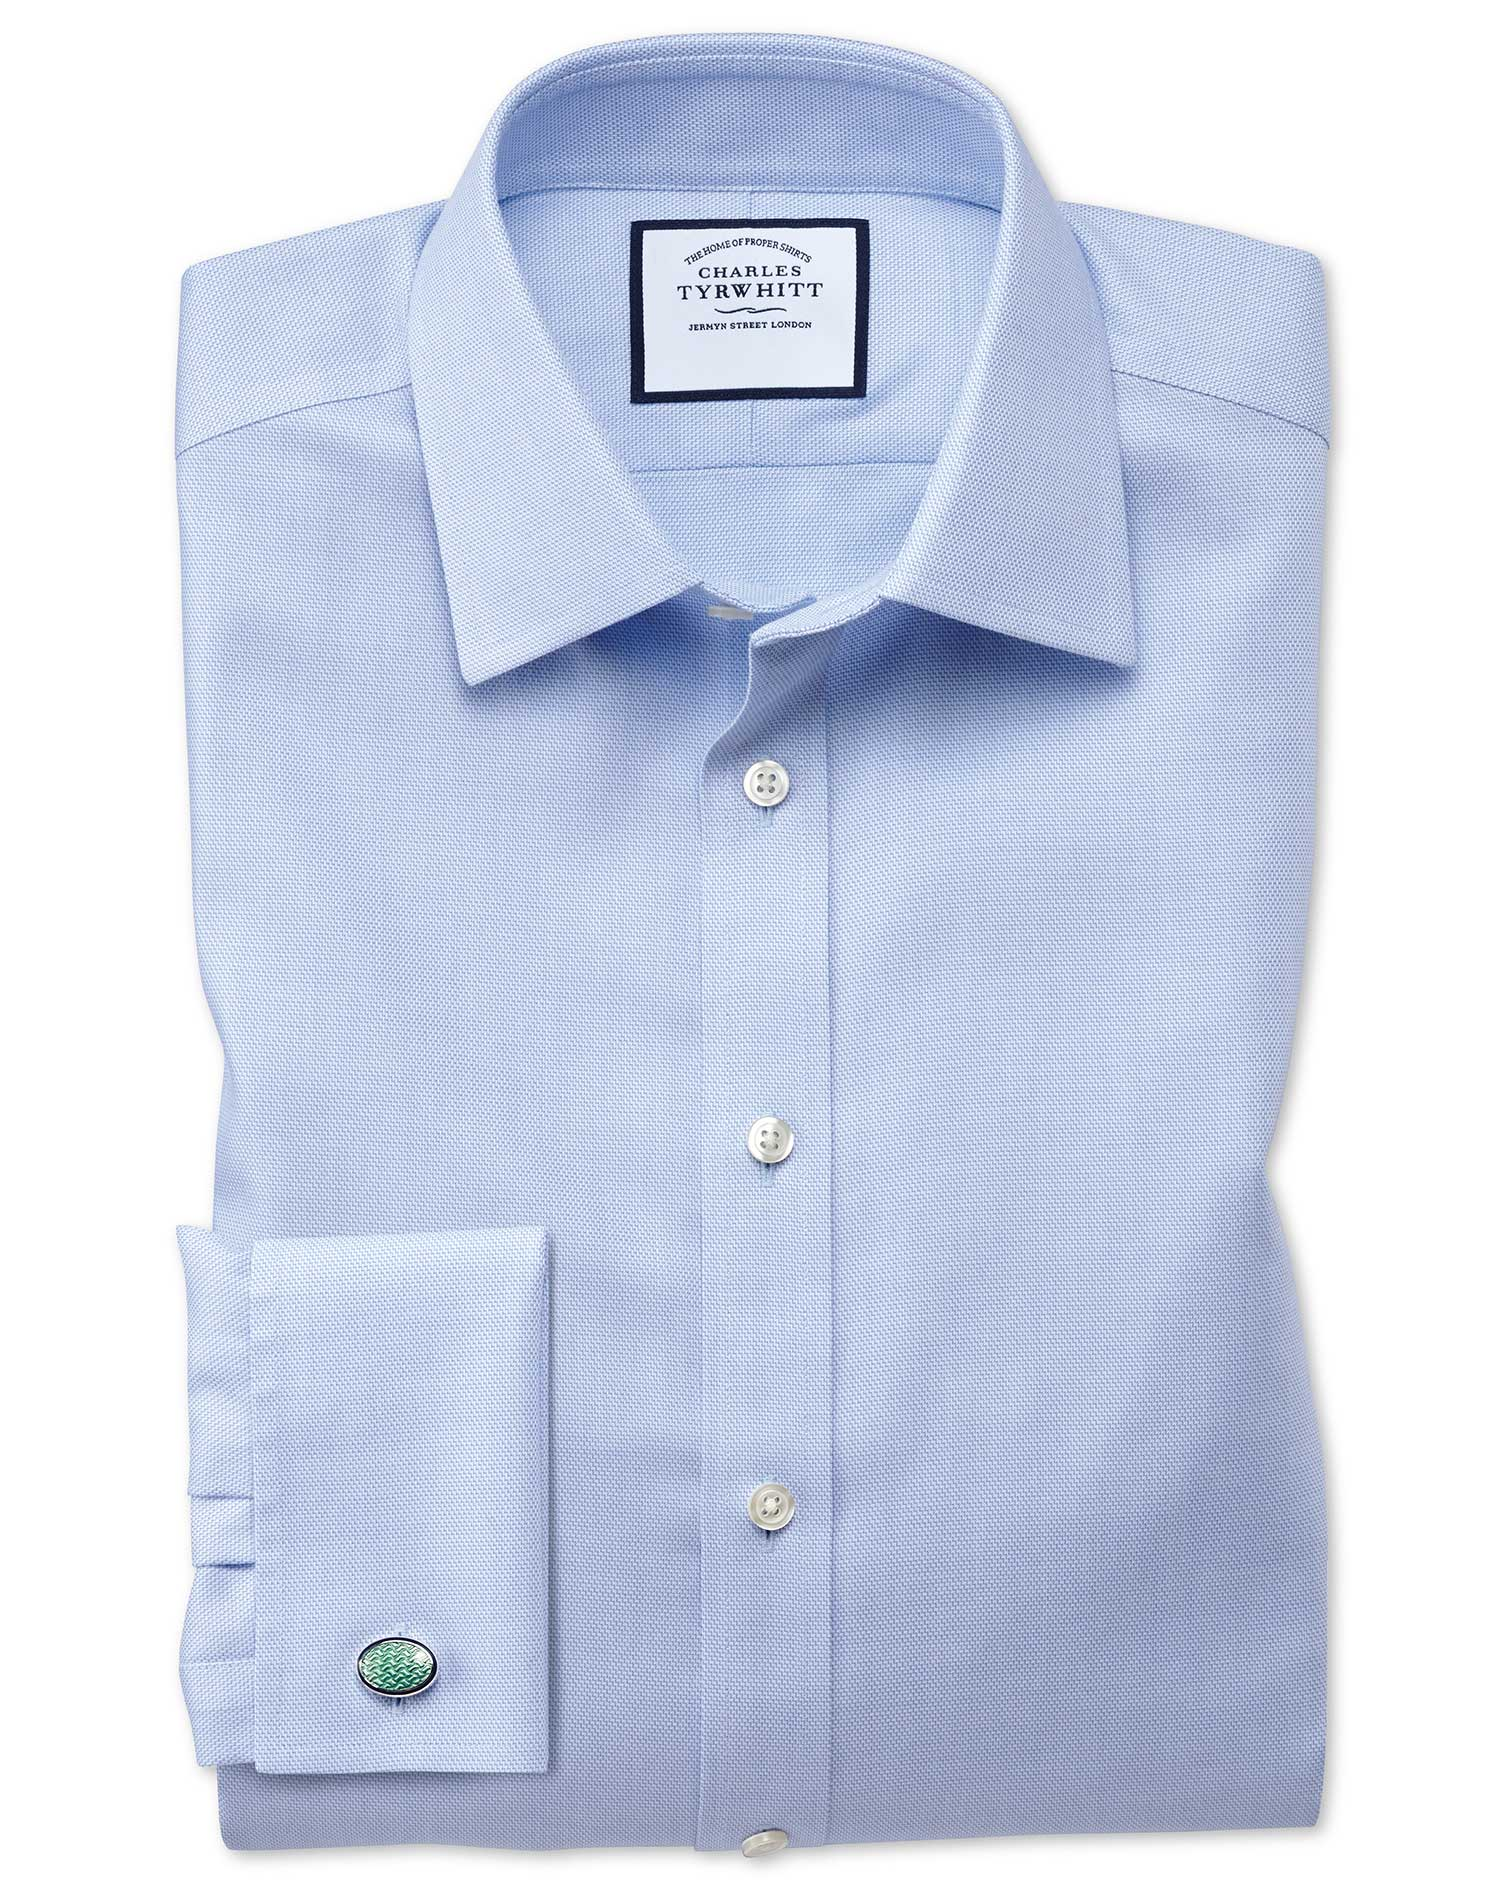 Classic Fit Non-Iron Step Weave Sky Blue Cotton Formal Shirt Single Cuff Size 17.5/38 by Charles Tyr